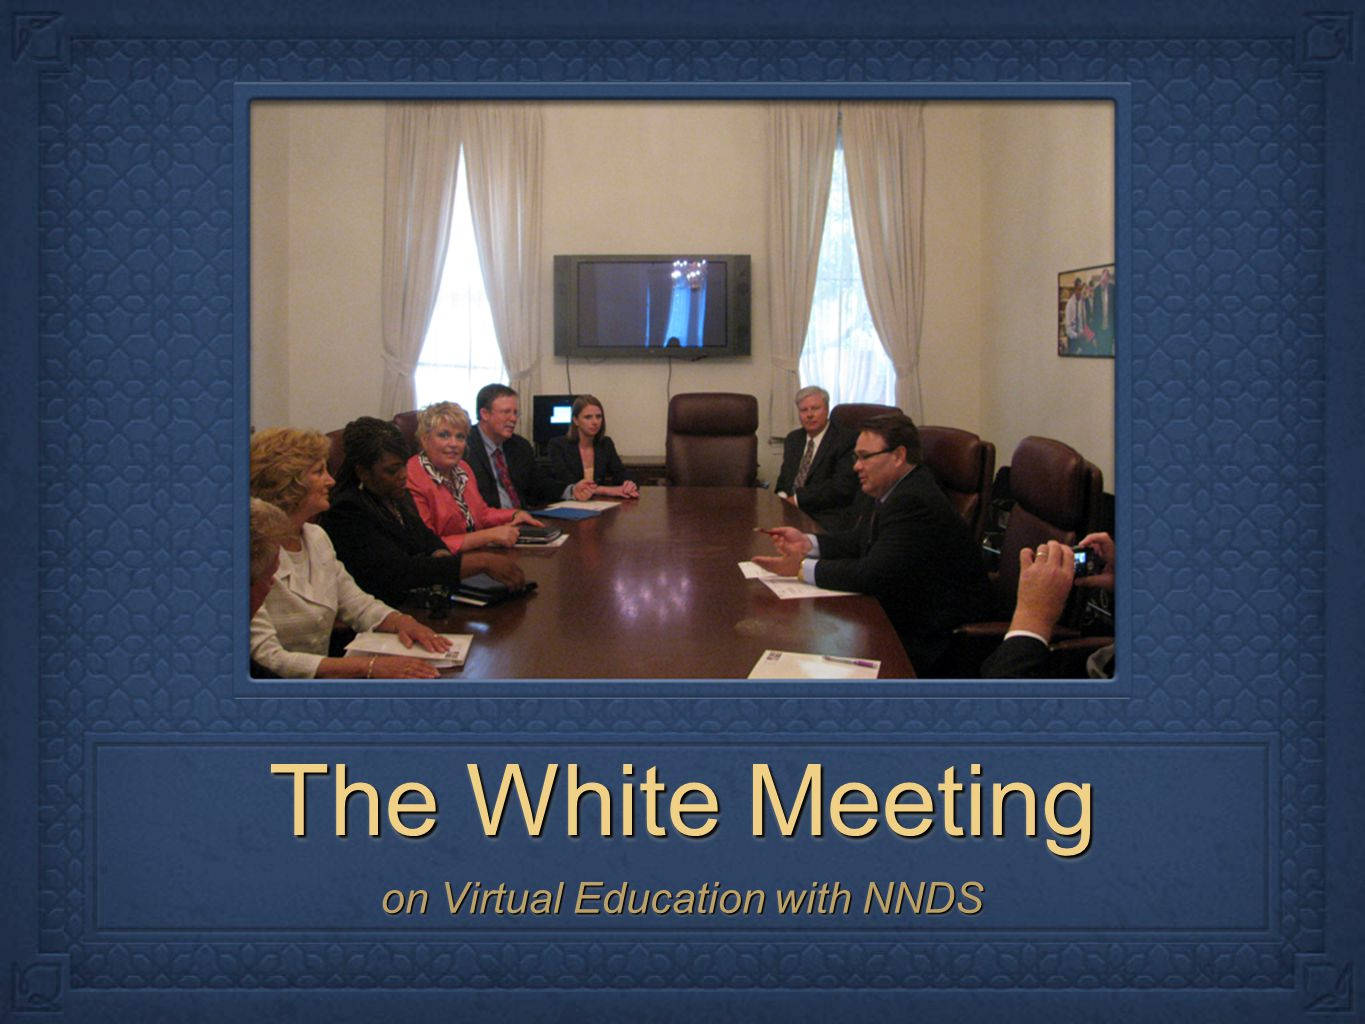 The White Meeting on Virtual Education with NNDS